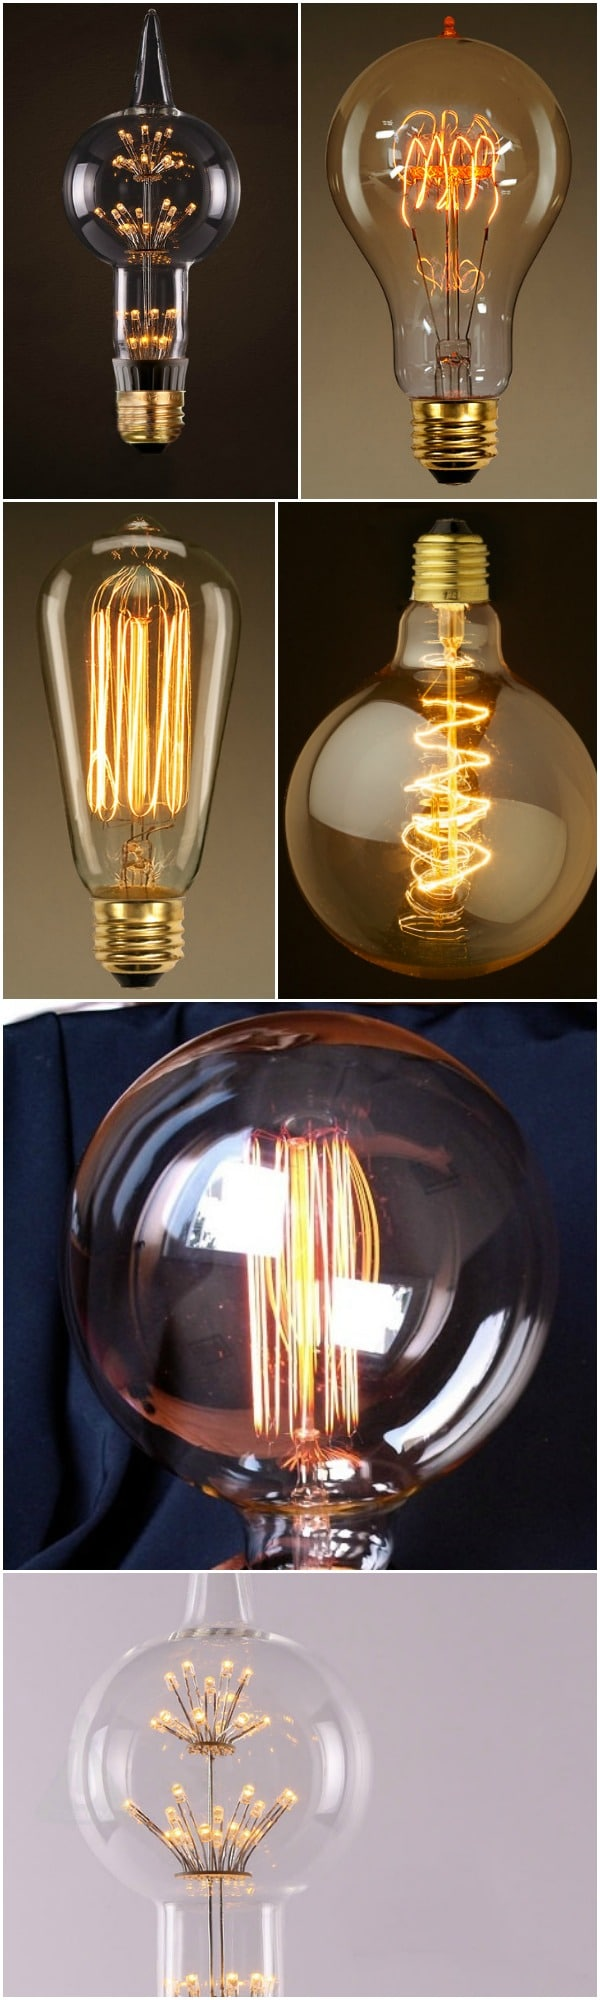 How to choose an Edison light bulb for your lamp? This comparative present you 10 great Edison bulbs to give a vintage style to your home decor. Vintage style incandescent lamp light historically accurate, beautifully reproduced! Fine quality true historic reproduction from this important ever-popular era in lighting and architecture. #lightbulb #diylighting #handmadelighting #lightingdesign #vintagelighting